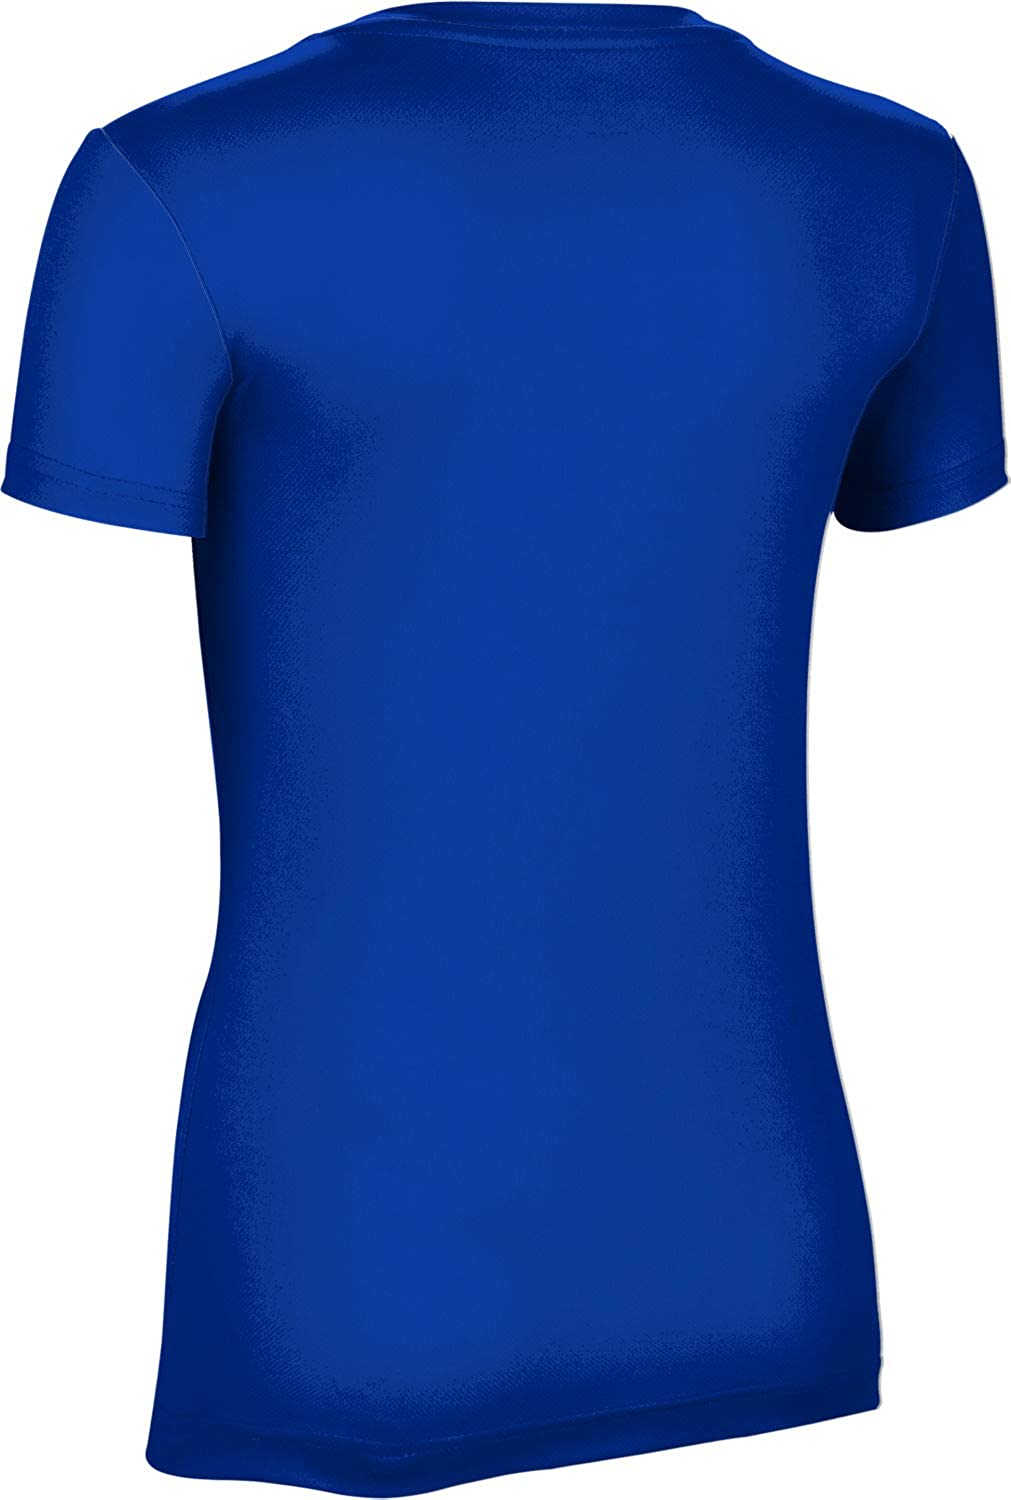 ProSphere Albany State University Girls' Performance T-Shirt (Solid)